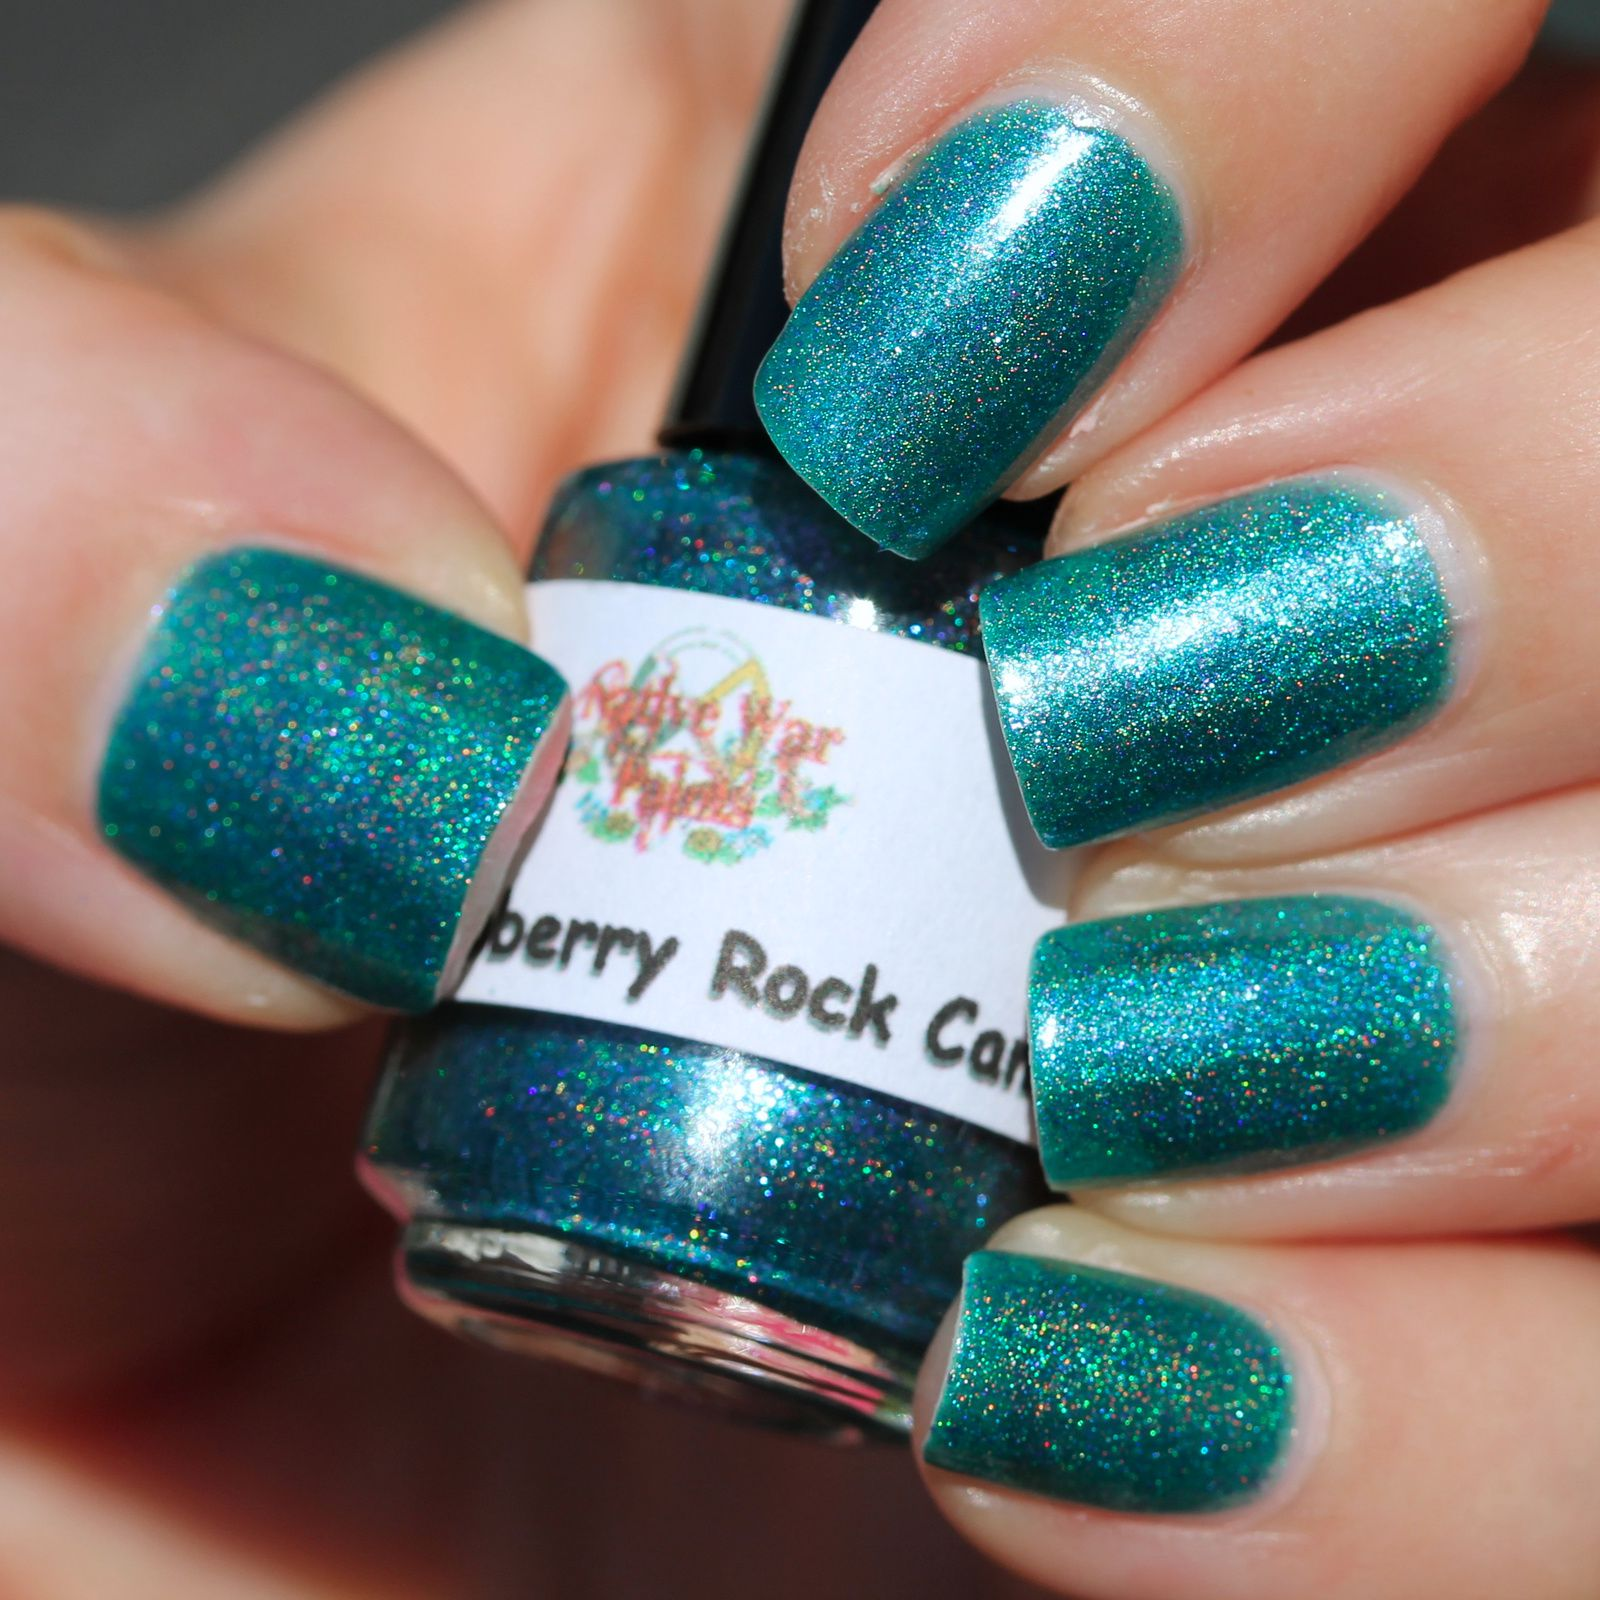 Native War Paints Blue Raspberry Rock Candy (2 coats, no top coat)